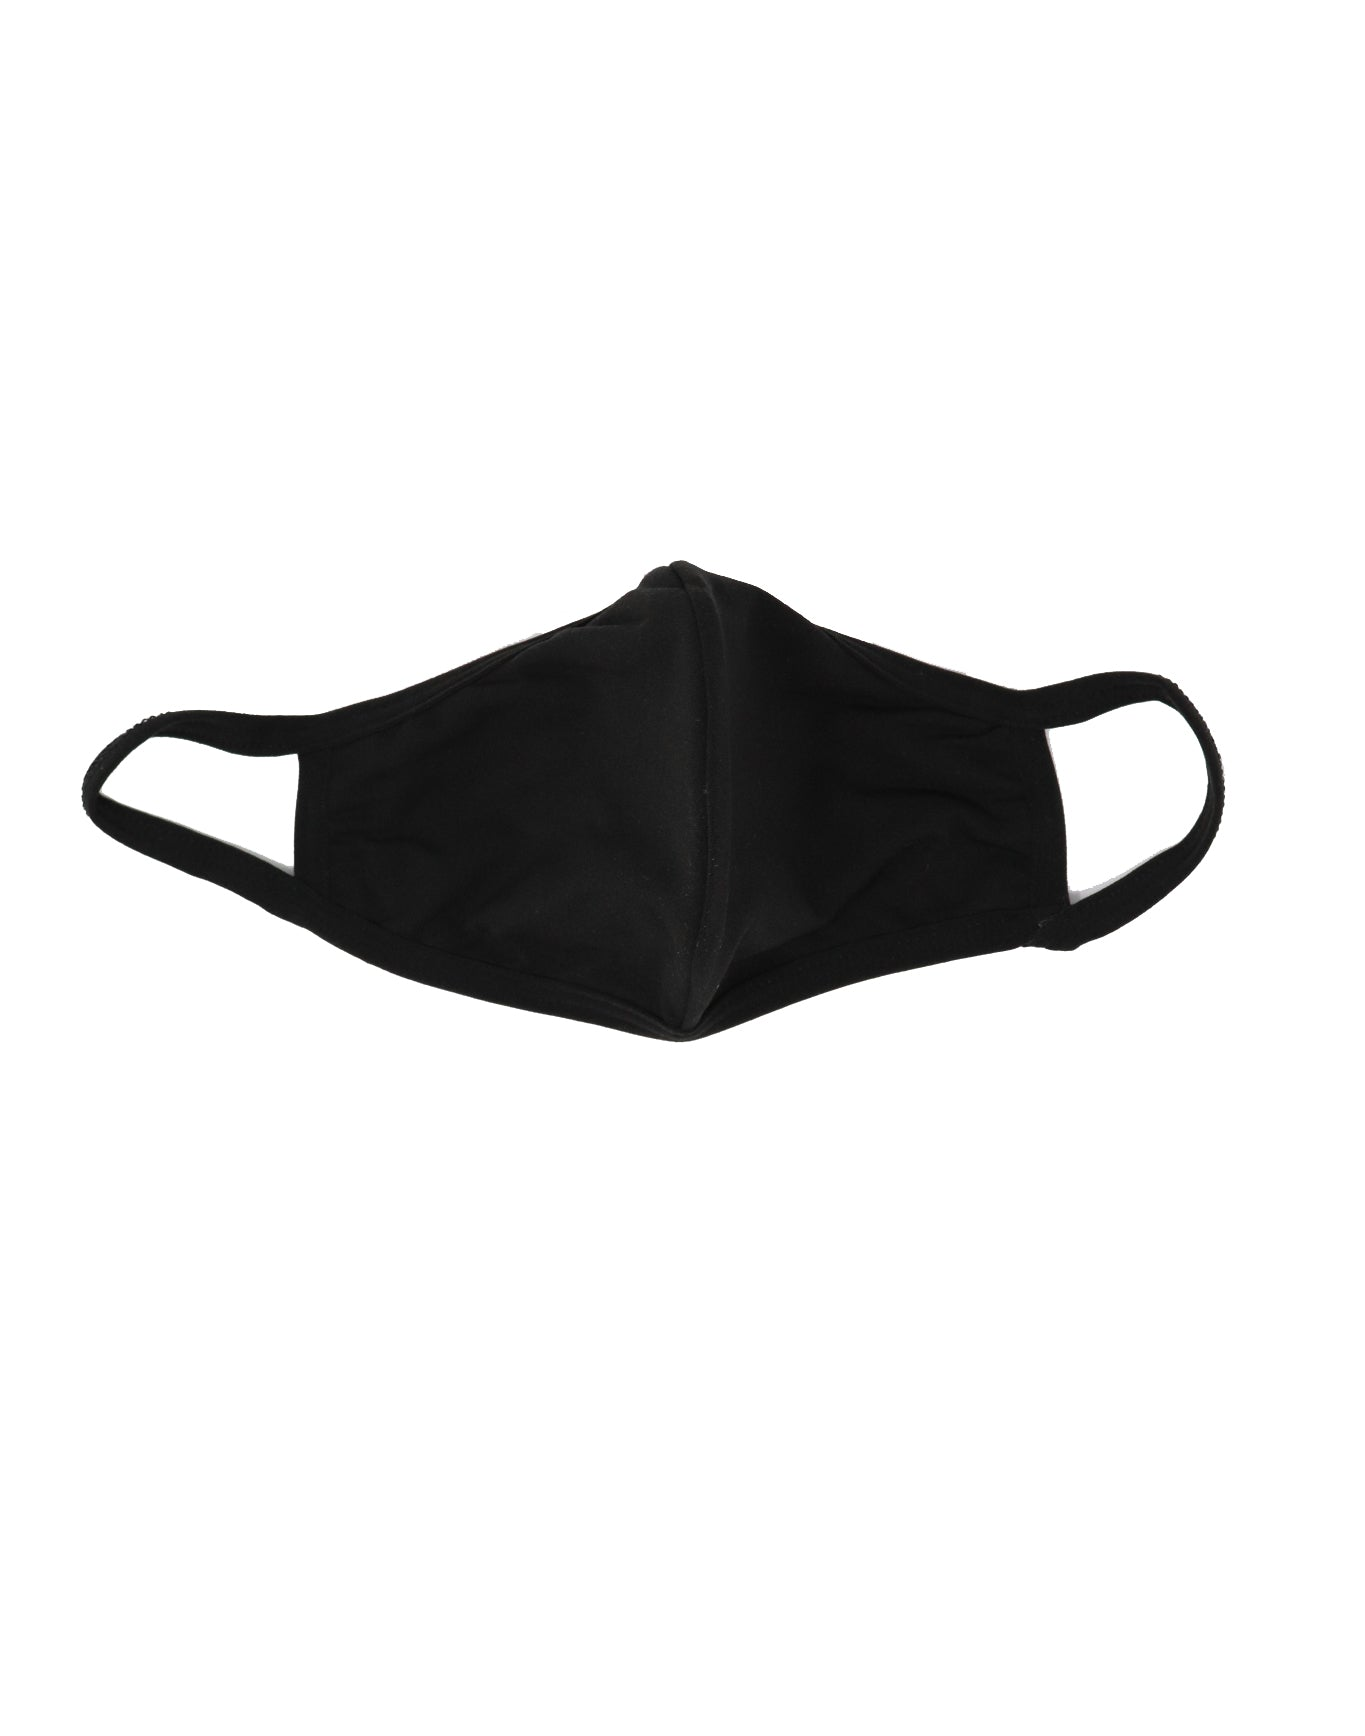 PJ Harlow Men's Face Mask - Black